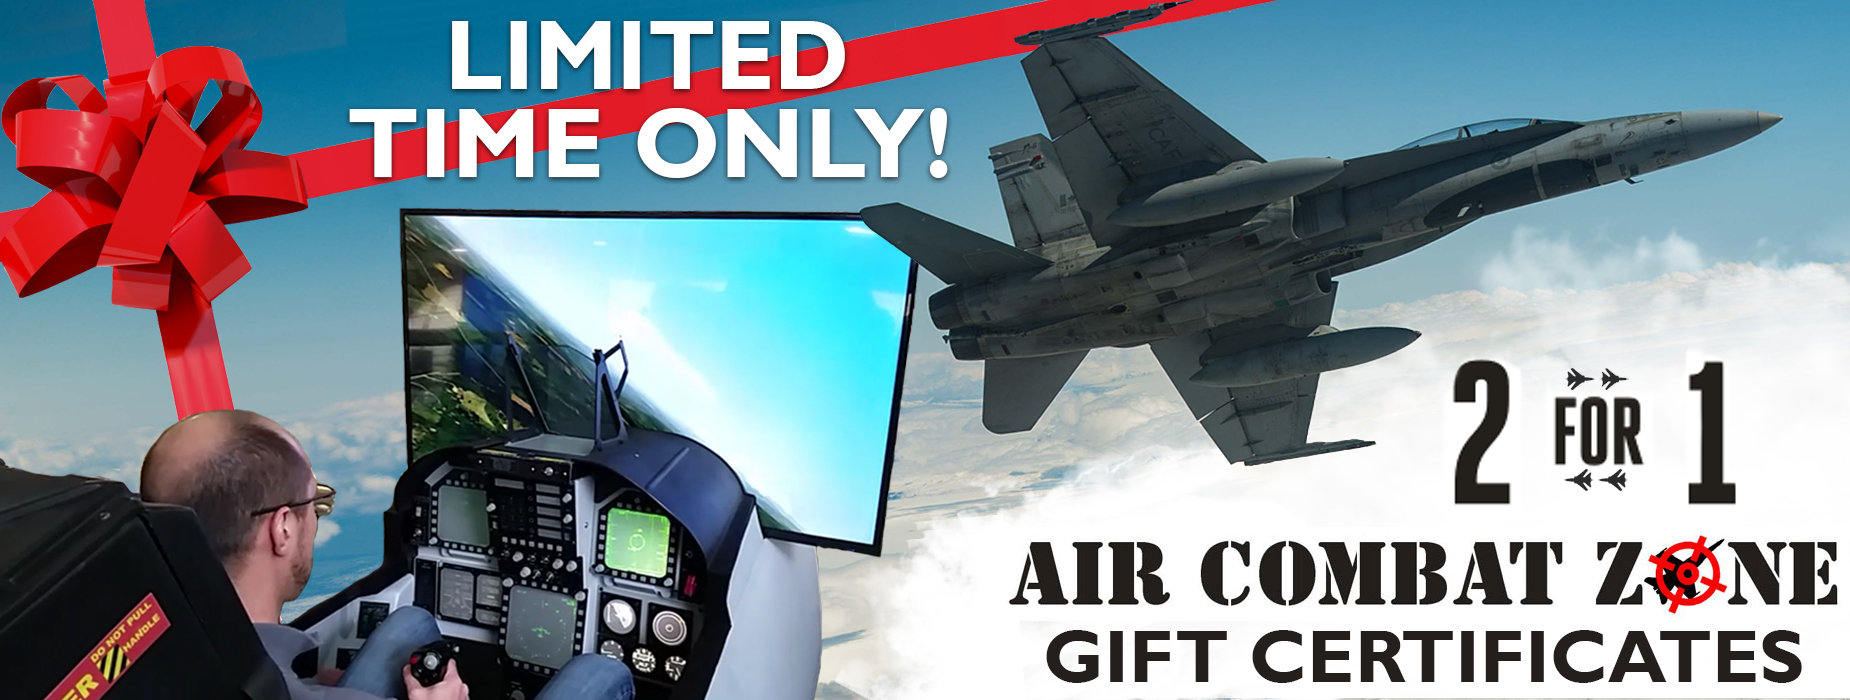 Poster for - Air Combat Zone - 2 for 1 Gift Certificates